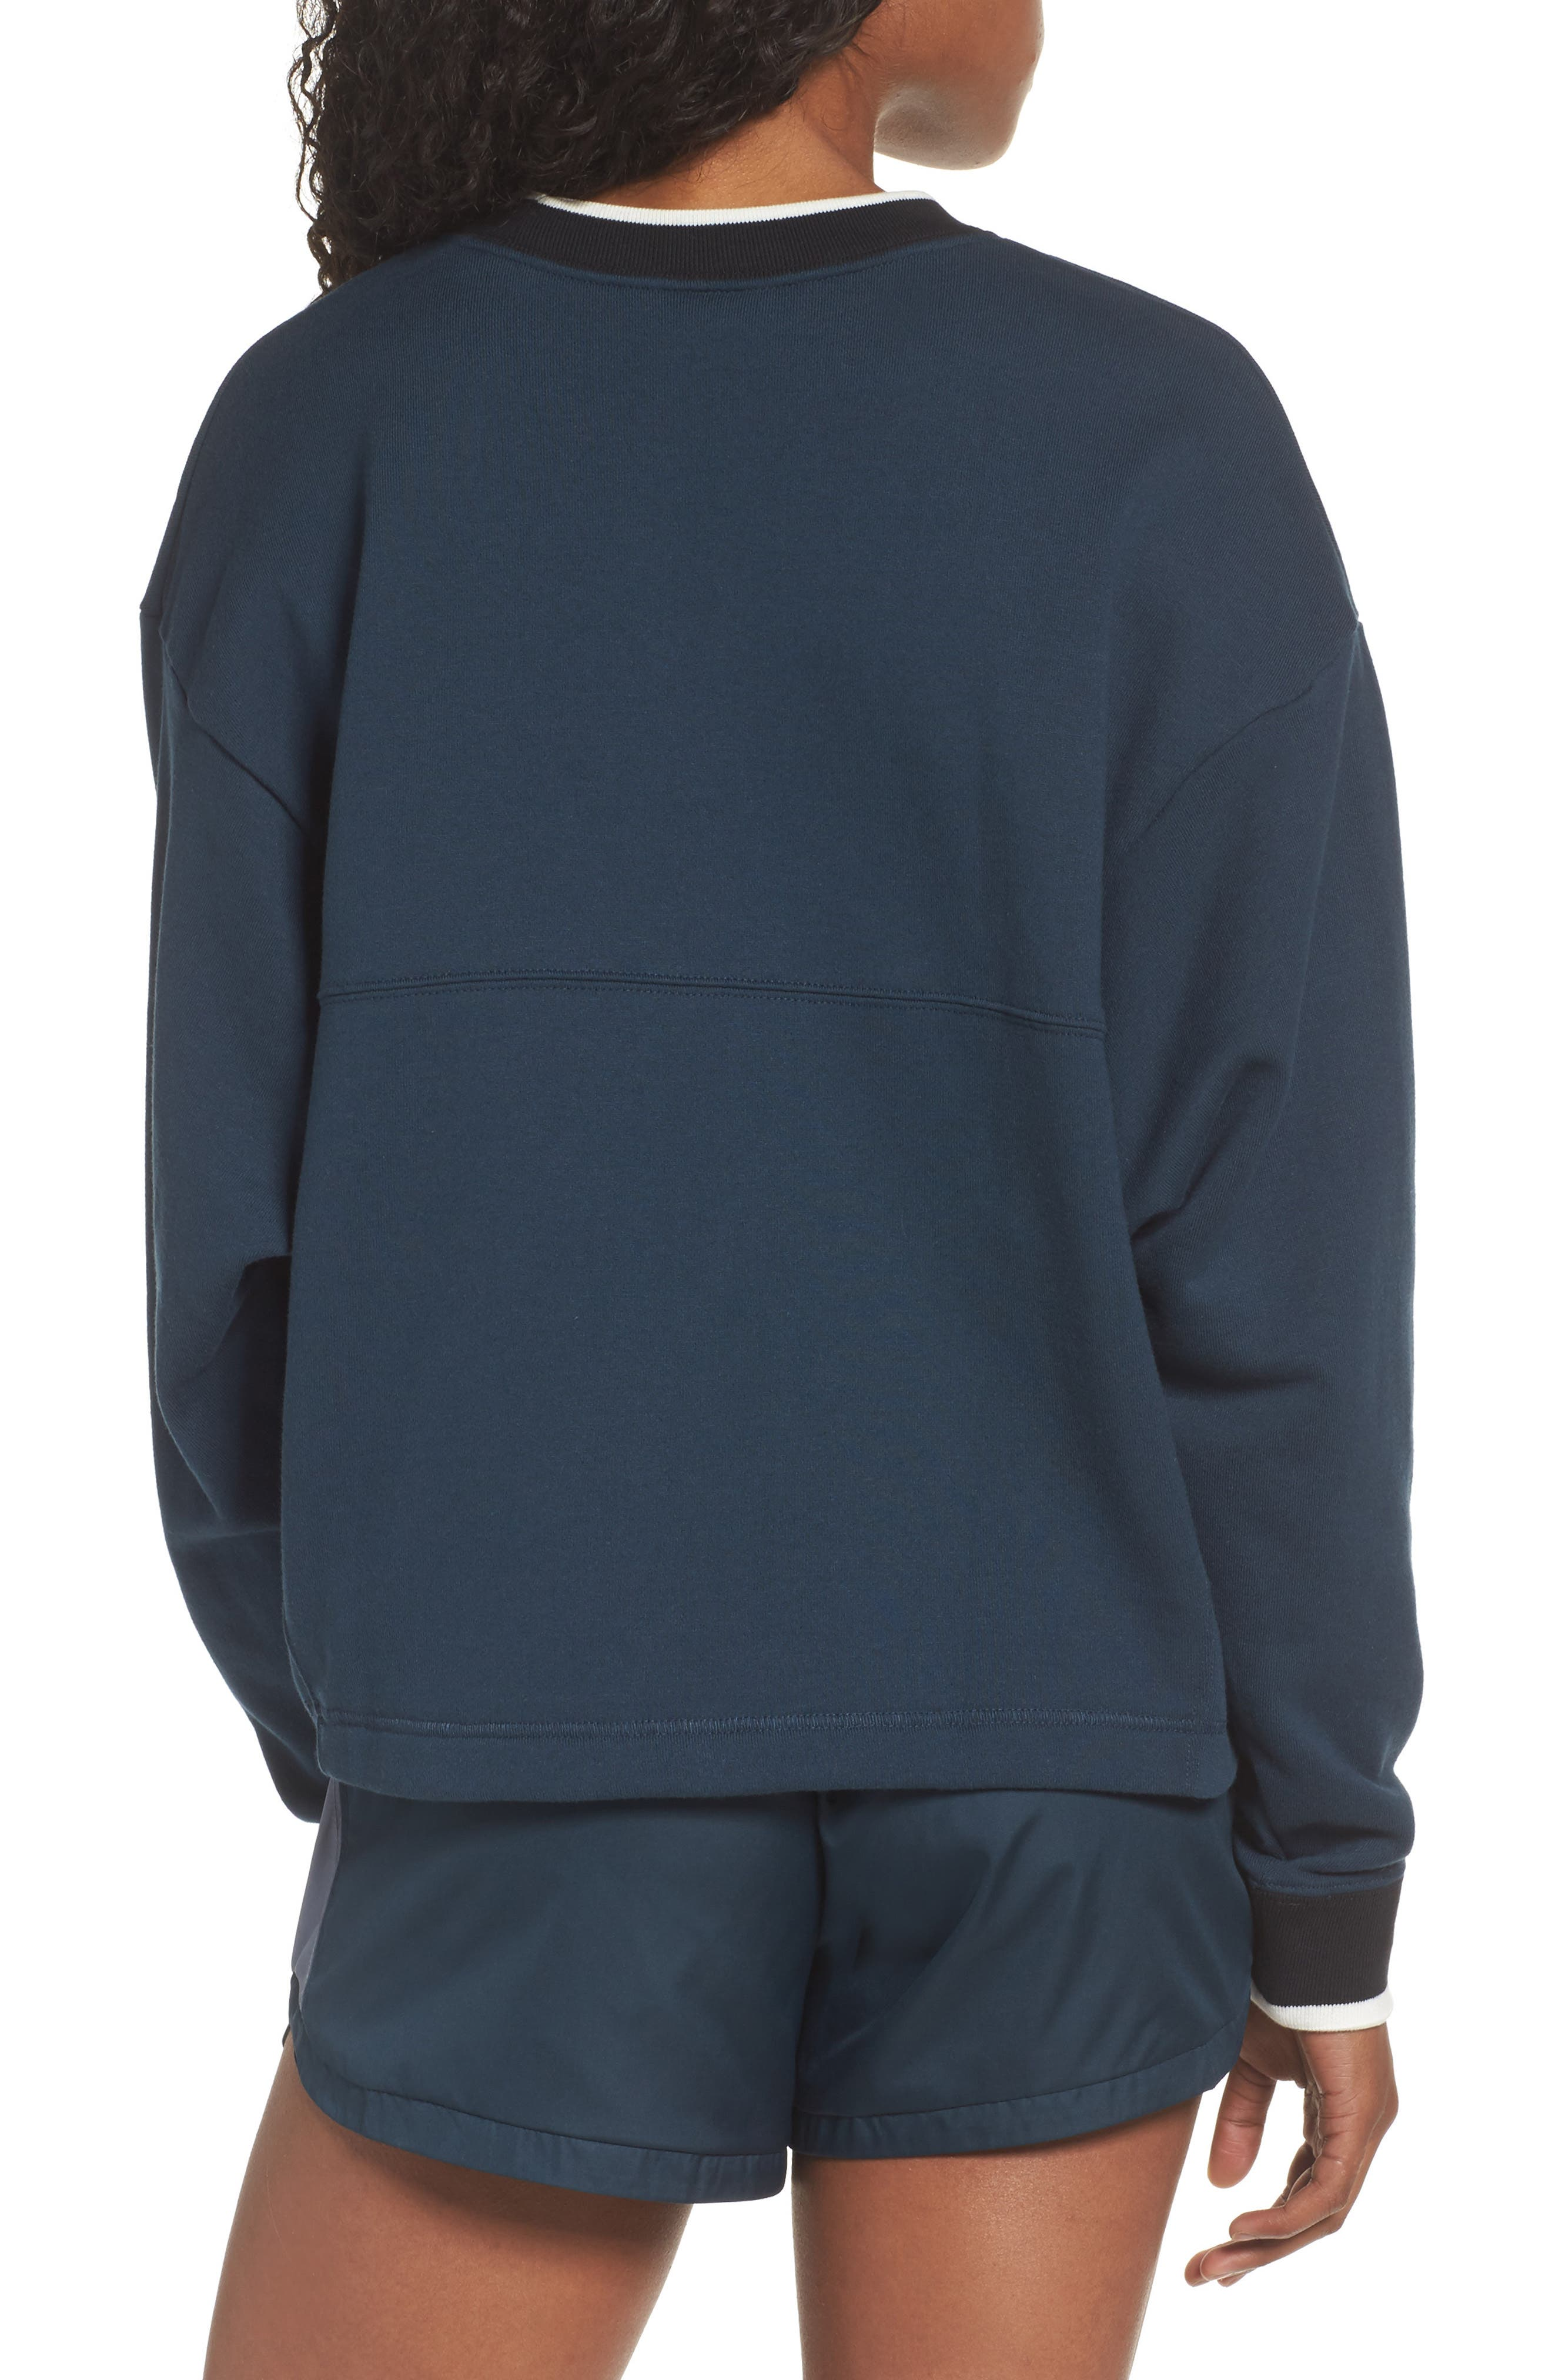 Sportswear Archive Sweatshirt,                             Alternate thumbnail 2, color,                             454